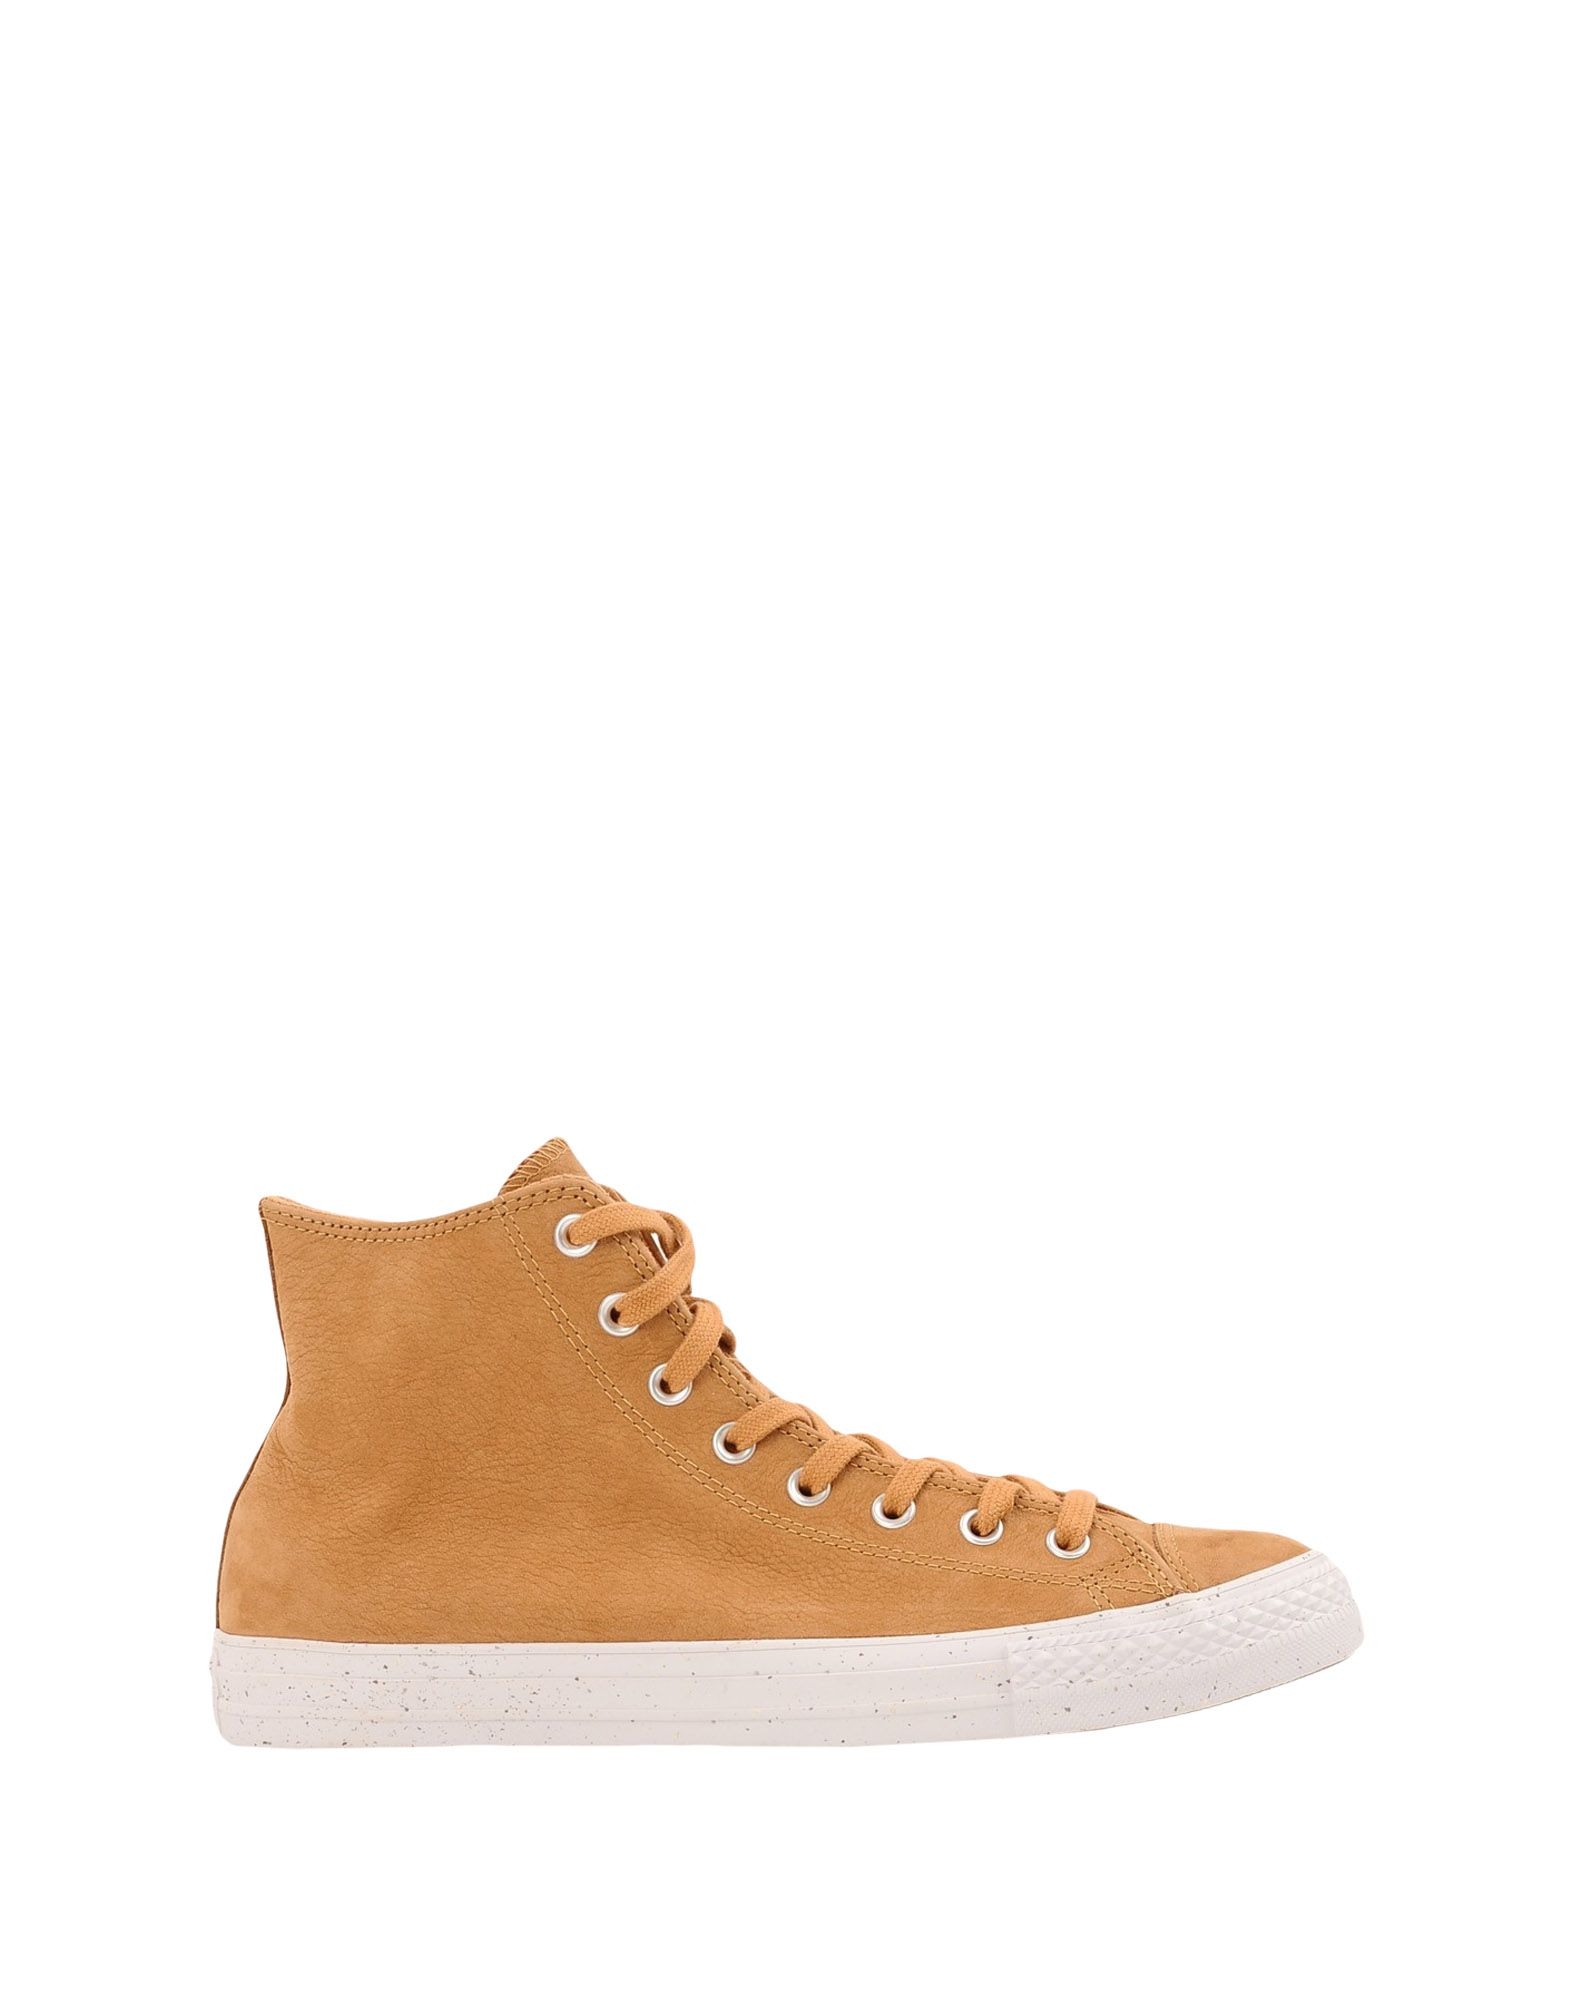 Rabatt echte Schuhe Converse Hi All Star Ct As Hi Converse Nubuck Leather  11335876CN ea0403